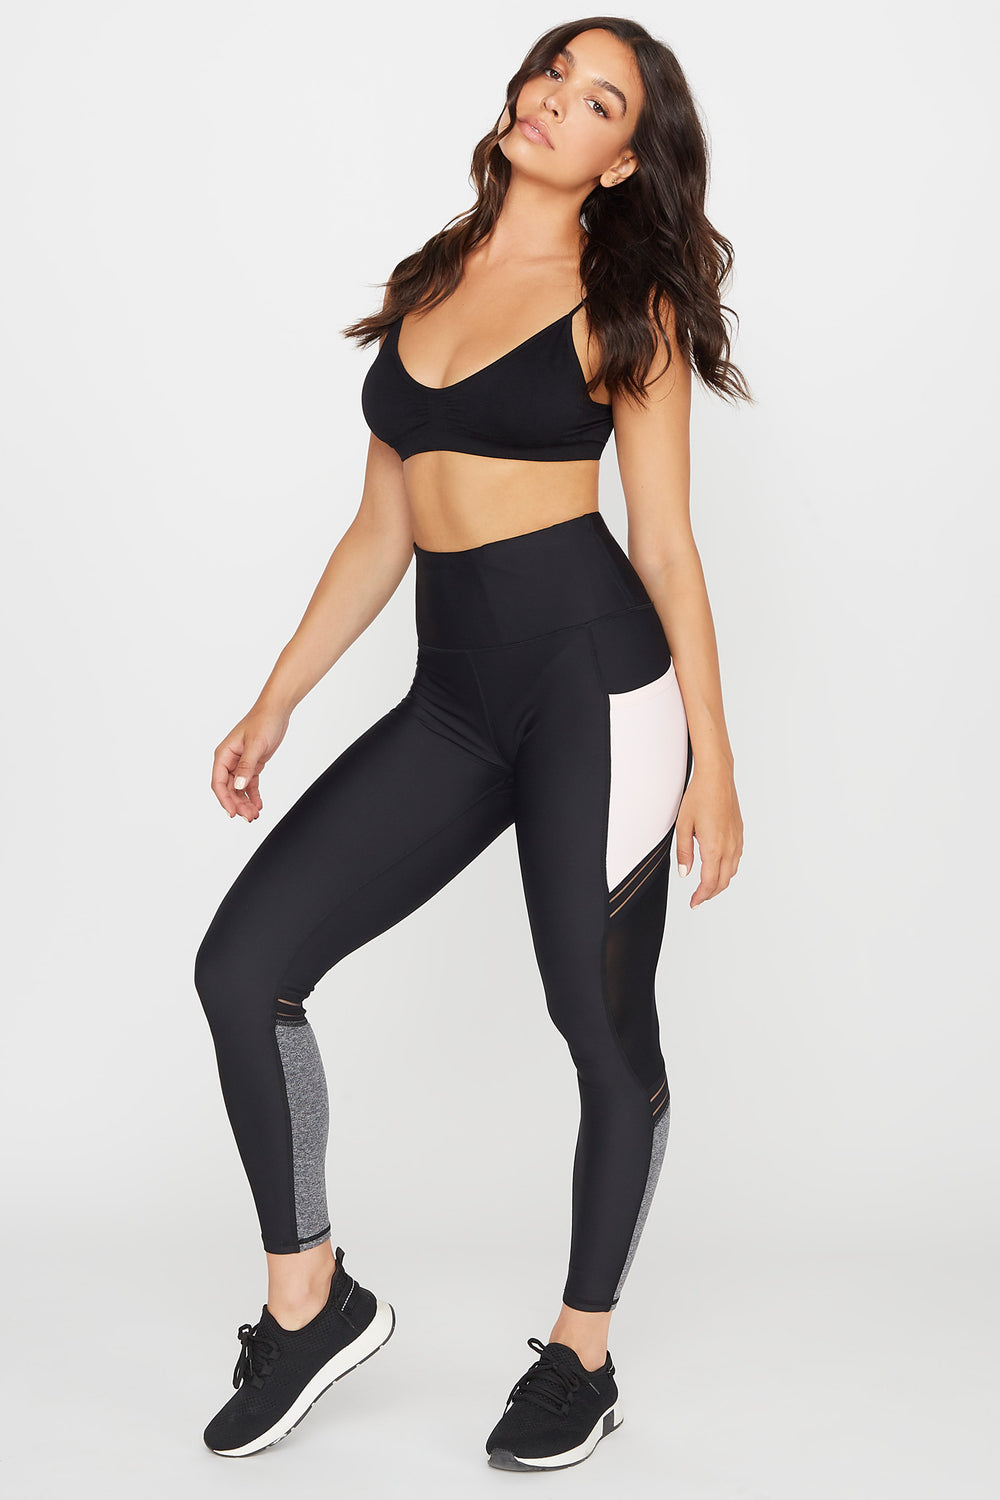 High-Rise Mesh Side Pocket Active Legging Black with White